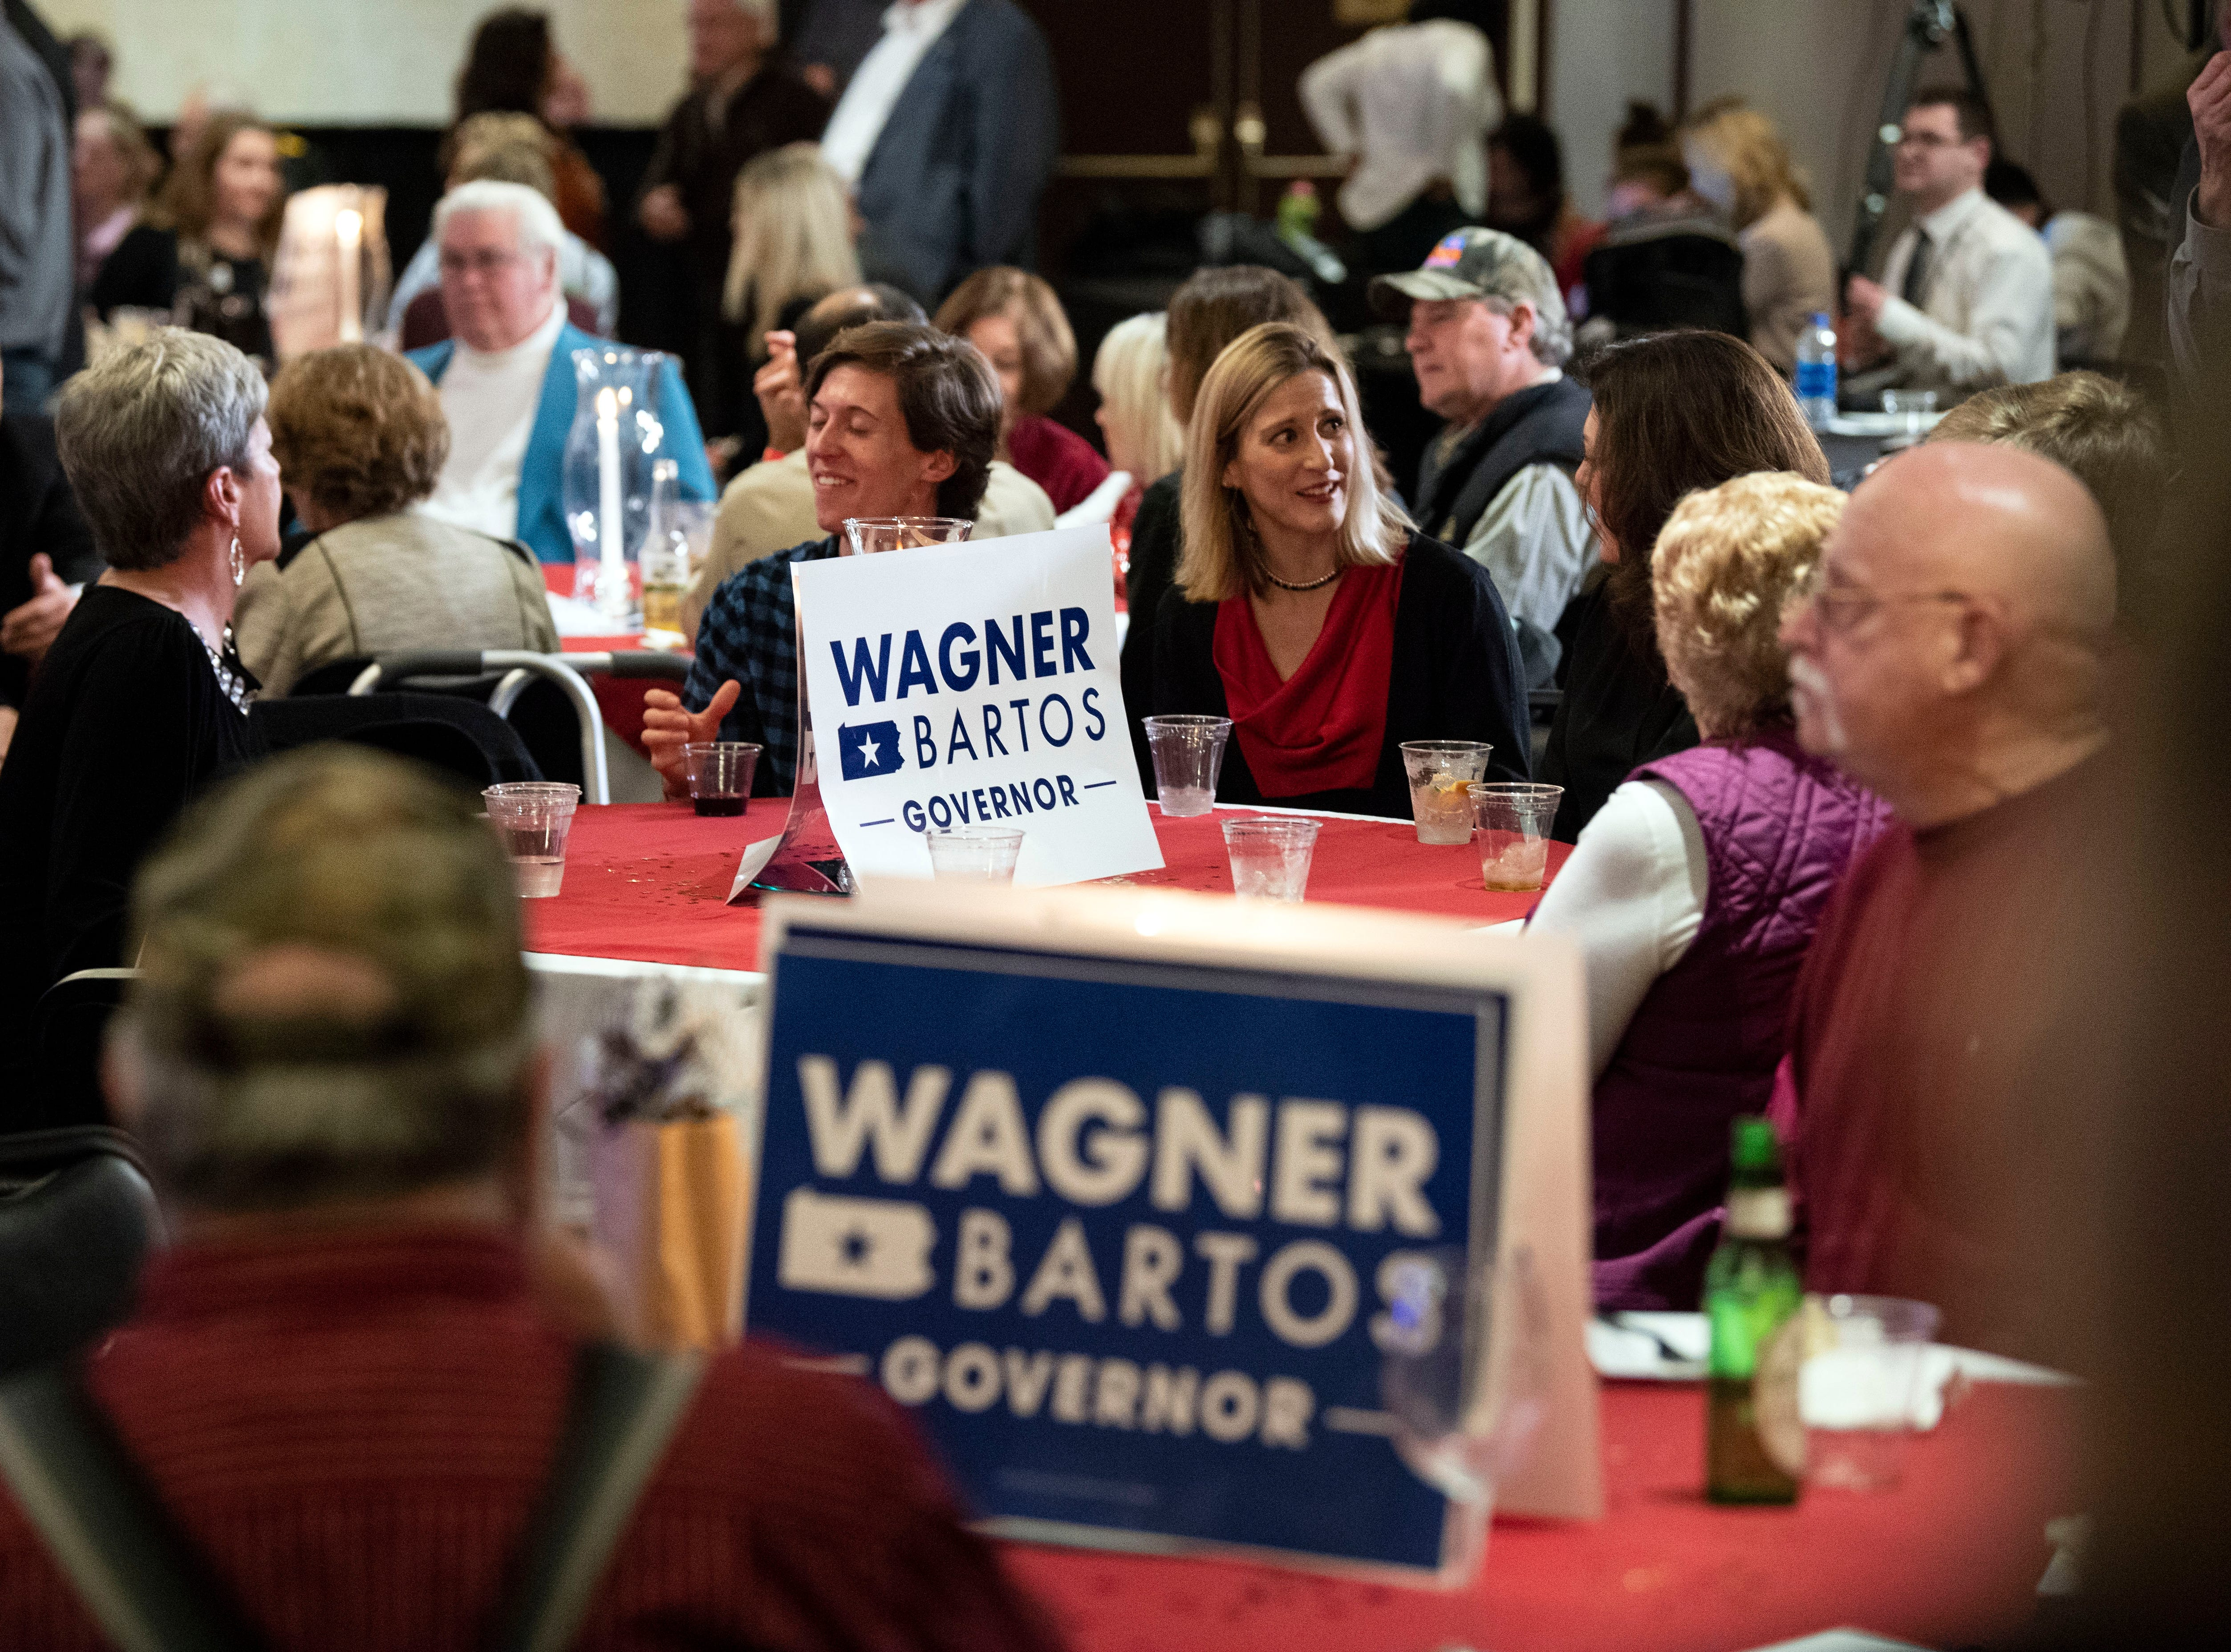 Crowds of supporters sit and watch midterm election results file in at Republican Scott Wagner's election watch party at the Wyndham Garden York hotel on Tuesday, Nov. 6, 2018. Wagner lost to Democratic incumbent Tom Wolf. During his concession speech, Wagner said he's not going anywhere.